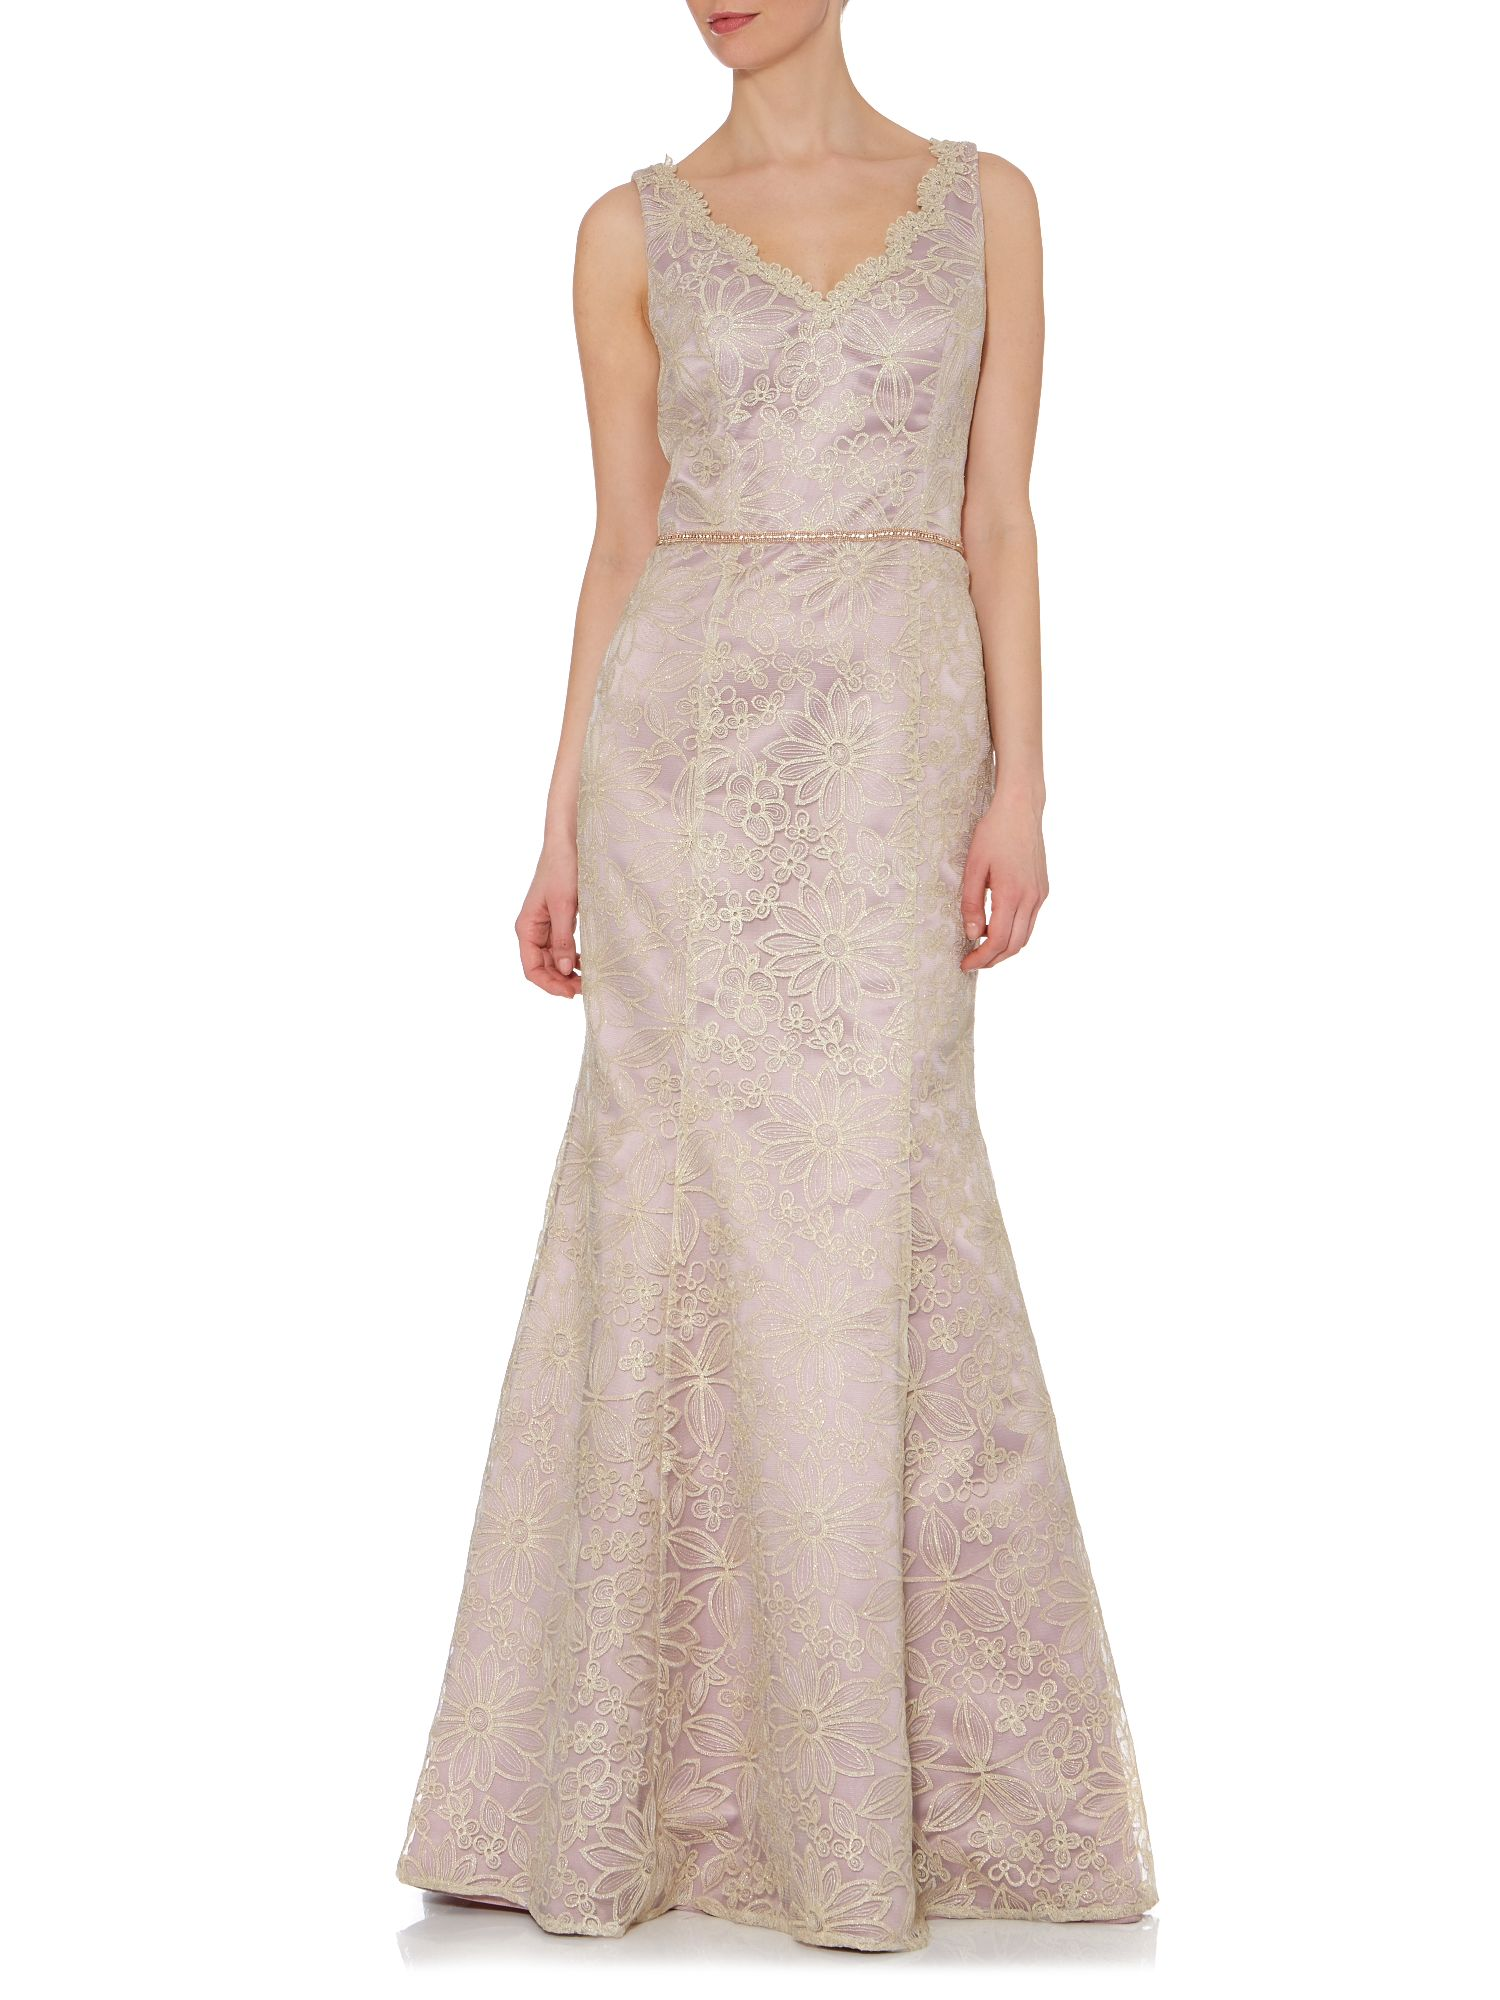 Daisy Lace Evening Dress